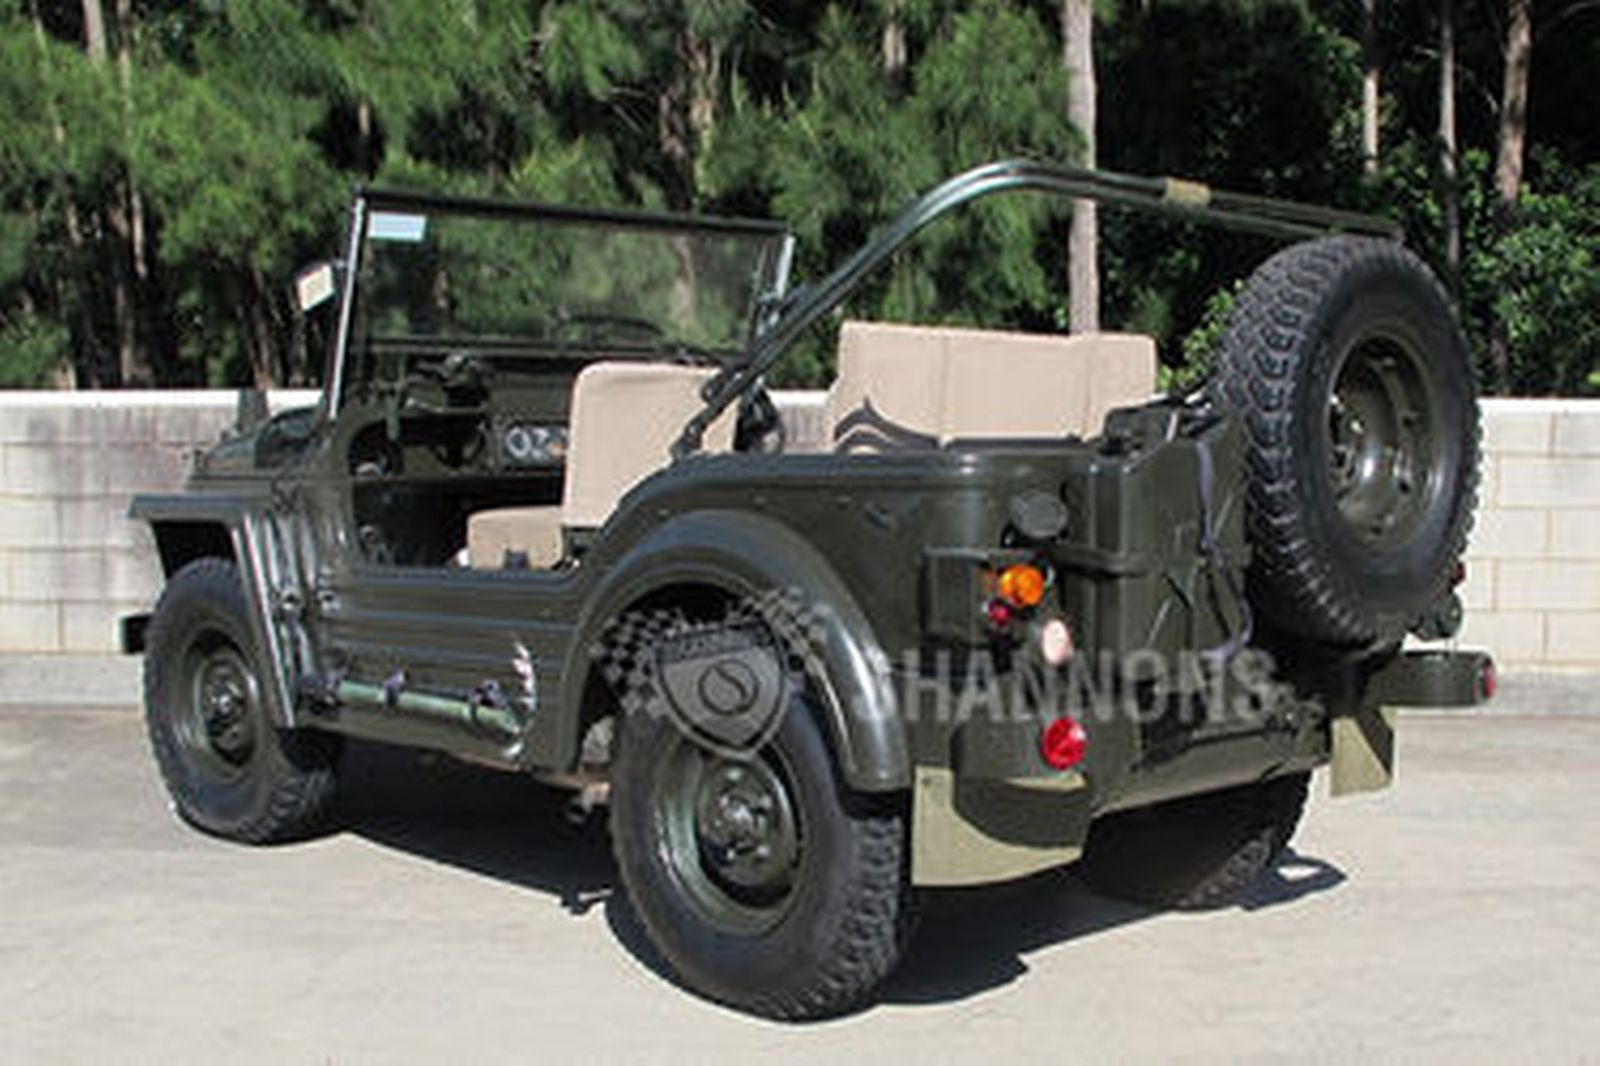 Sold: Austin Champ 4x4 Military Vehicle Auctions - Lot 5 - Shannons